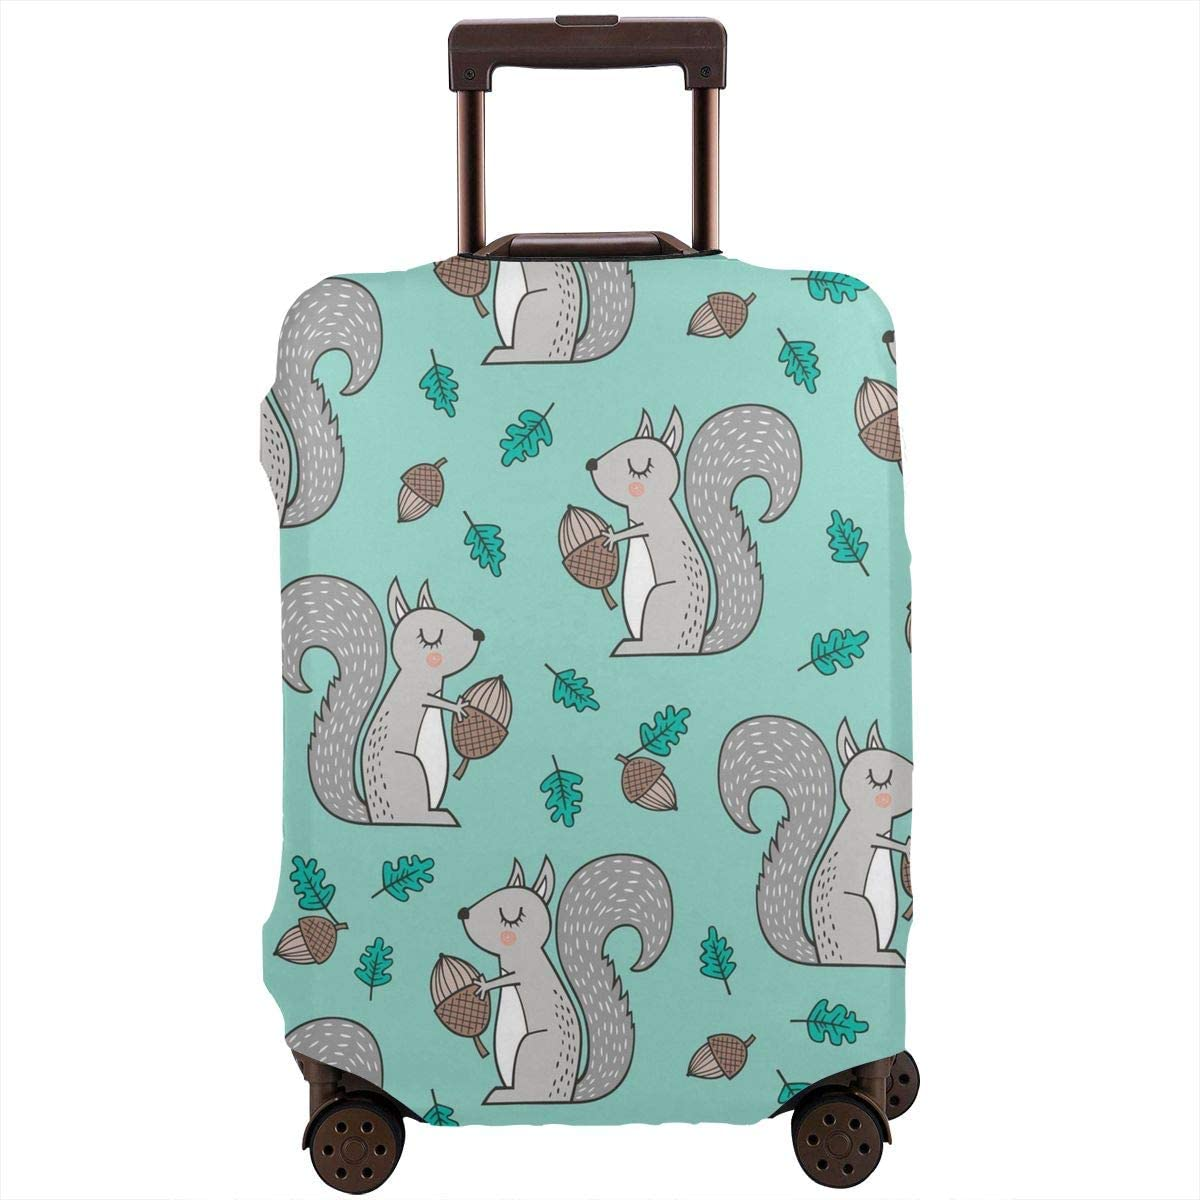 4 Size Forest Squirrels With Leaves Printed Business Luggage Protector Travel Baggage Suitcase Cover